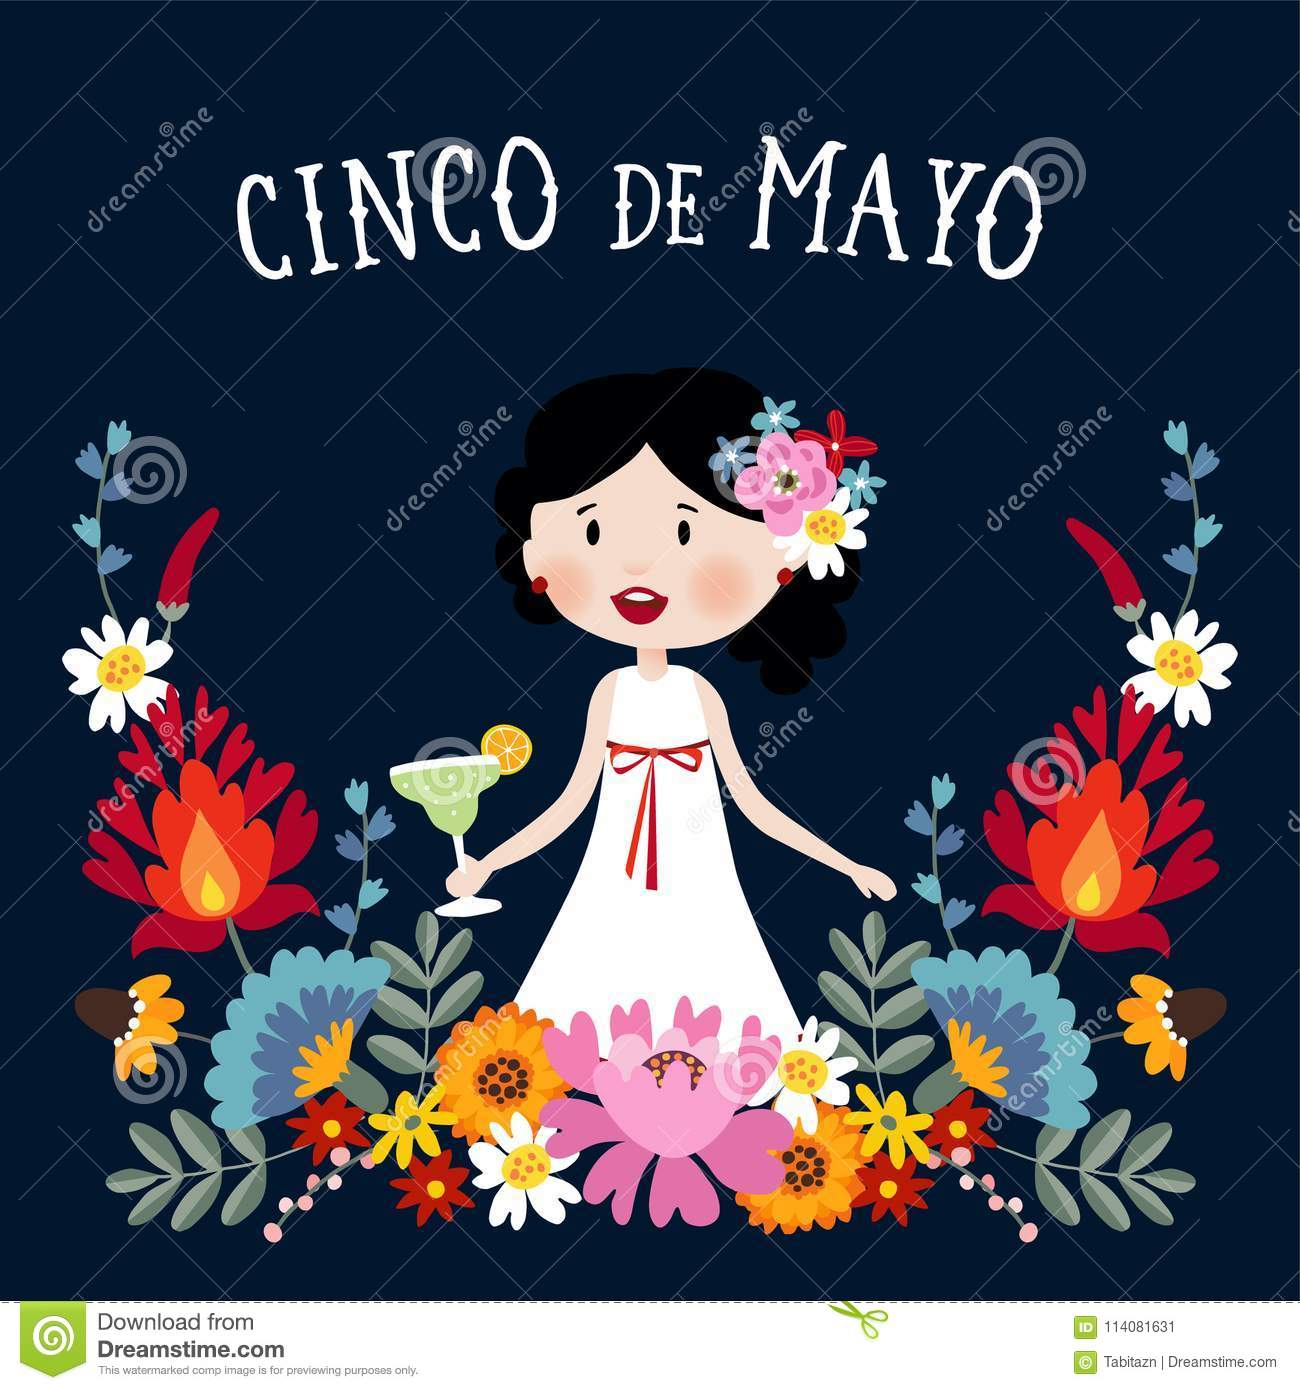 Cinco de Mayo greeting card, invitation with Mexican woman drinking margarita cocktail, chili peppers and decorative